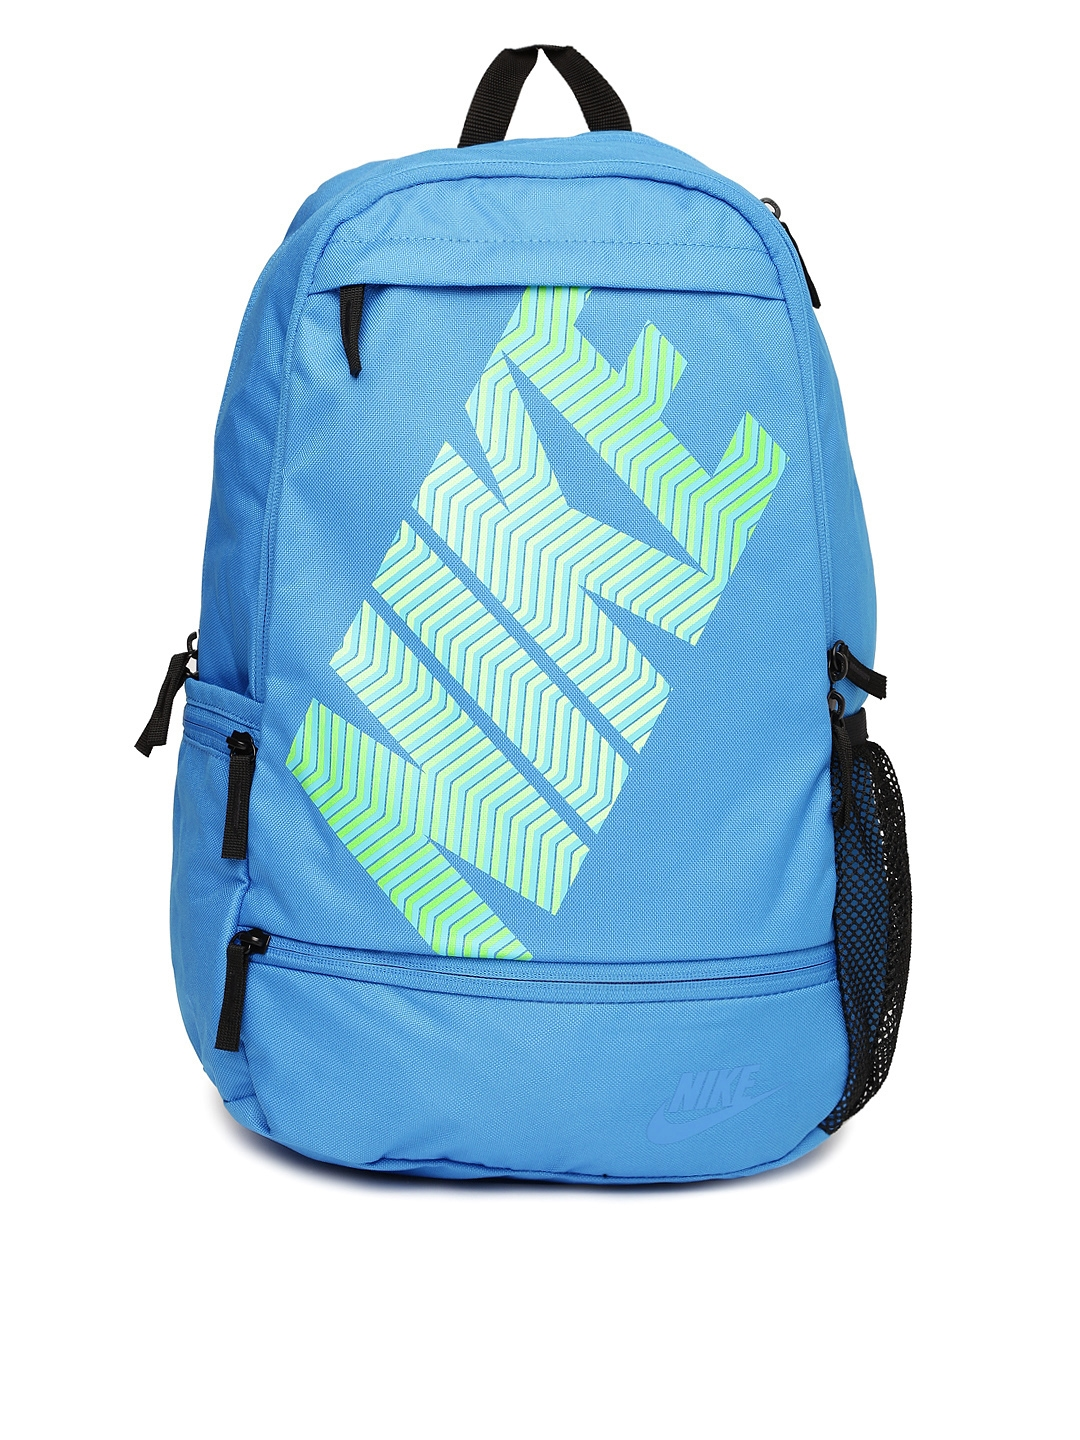 Buy Nike Unisex Blue Classic Line Printed Backpack - Backpacks for Unisex  1801472